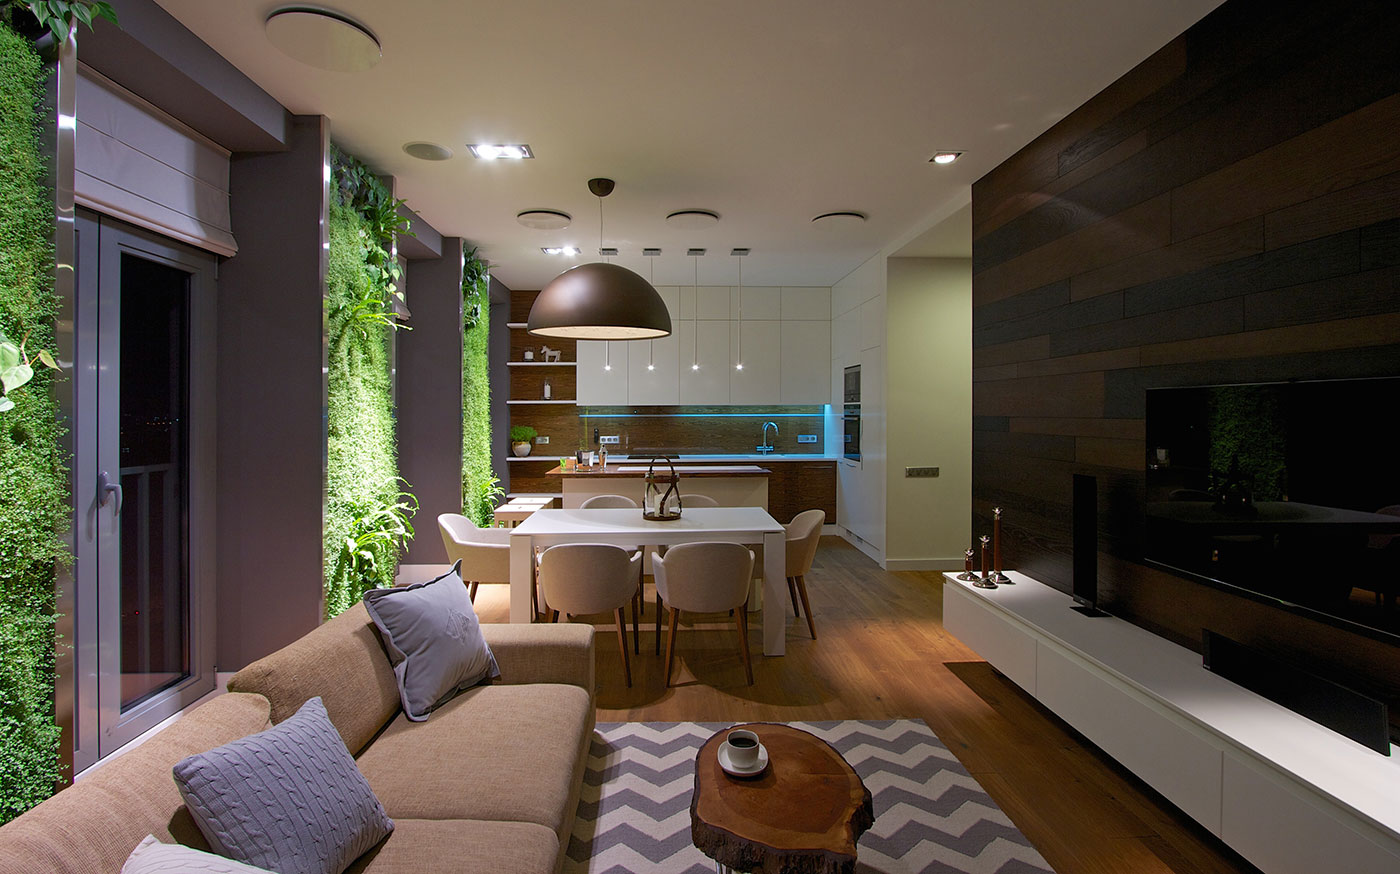 House Floor Plans With Loft Modern Apartment Design Green Walls By Svoya